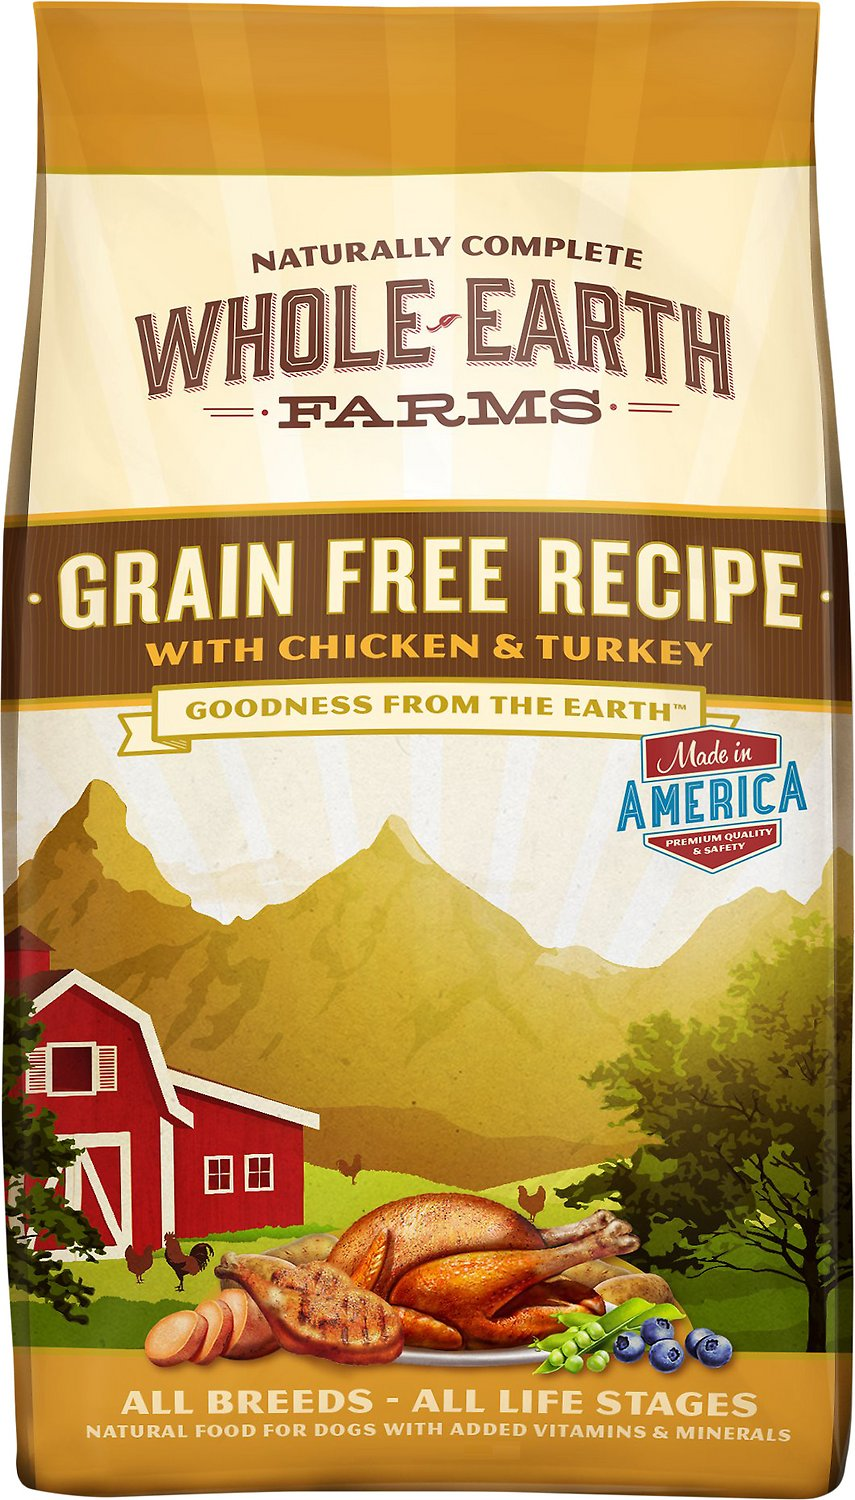 Whole Earth Farms Grain-Free Chicken & Turkey Recipe Dry Dog Food Image